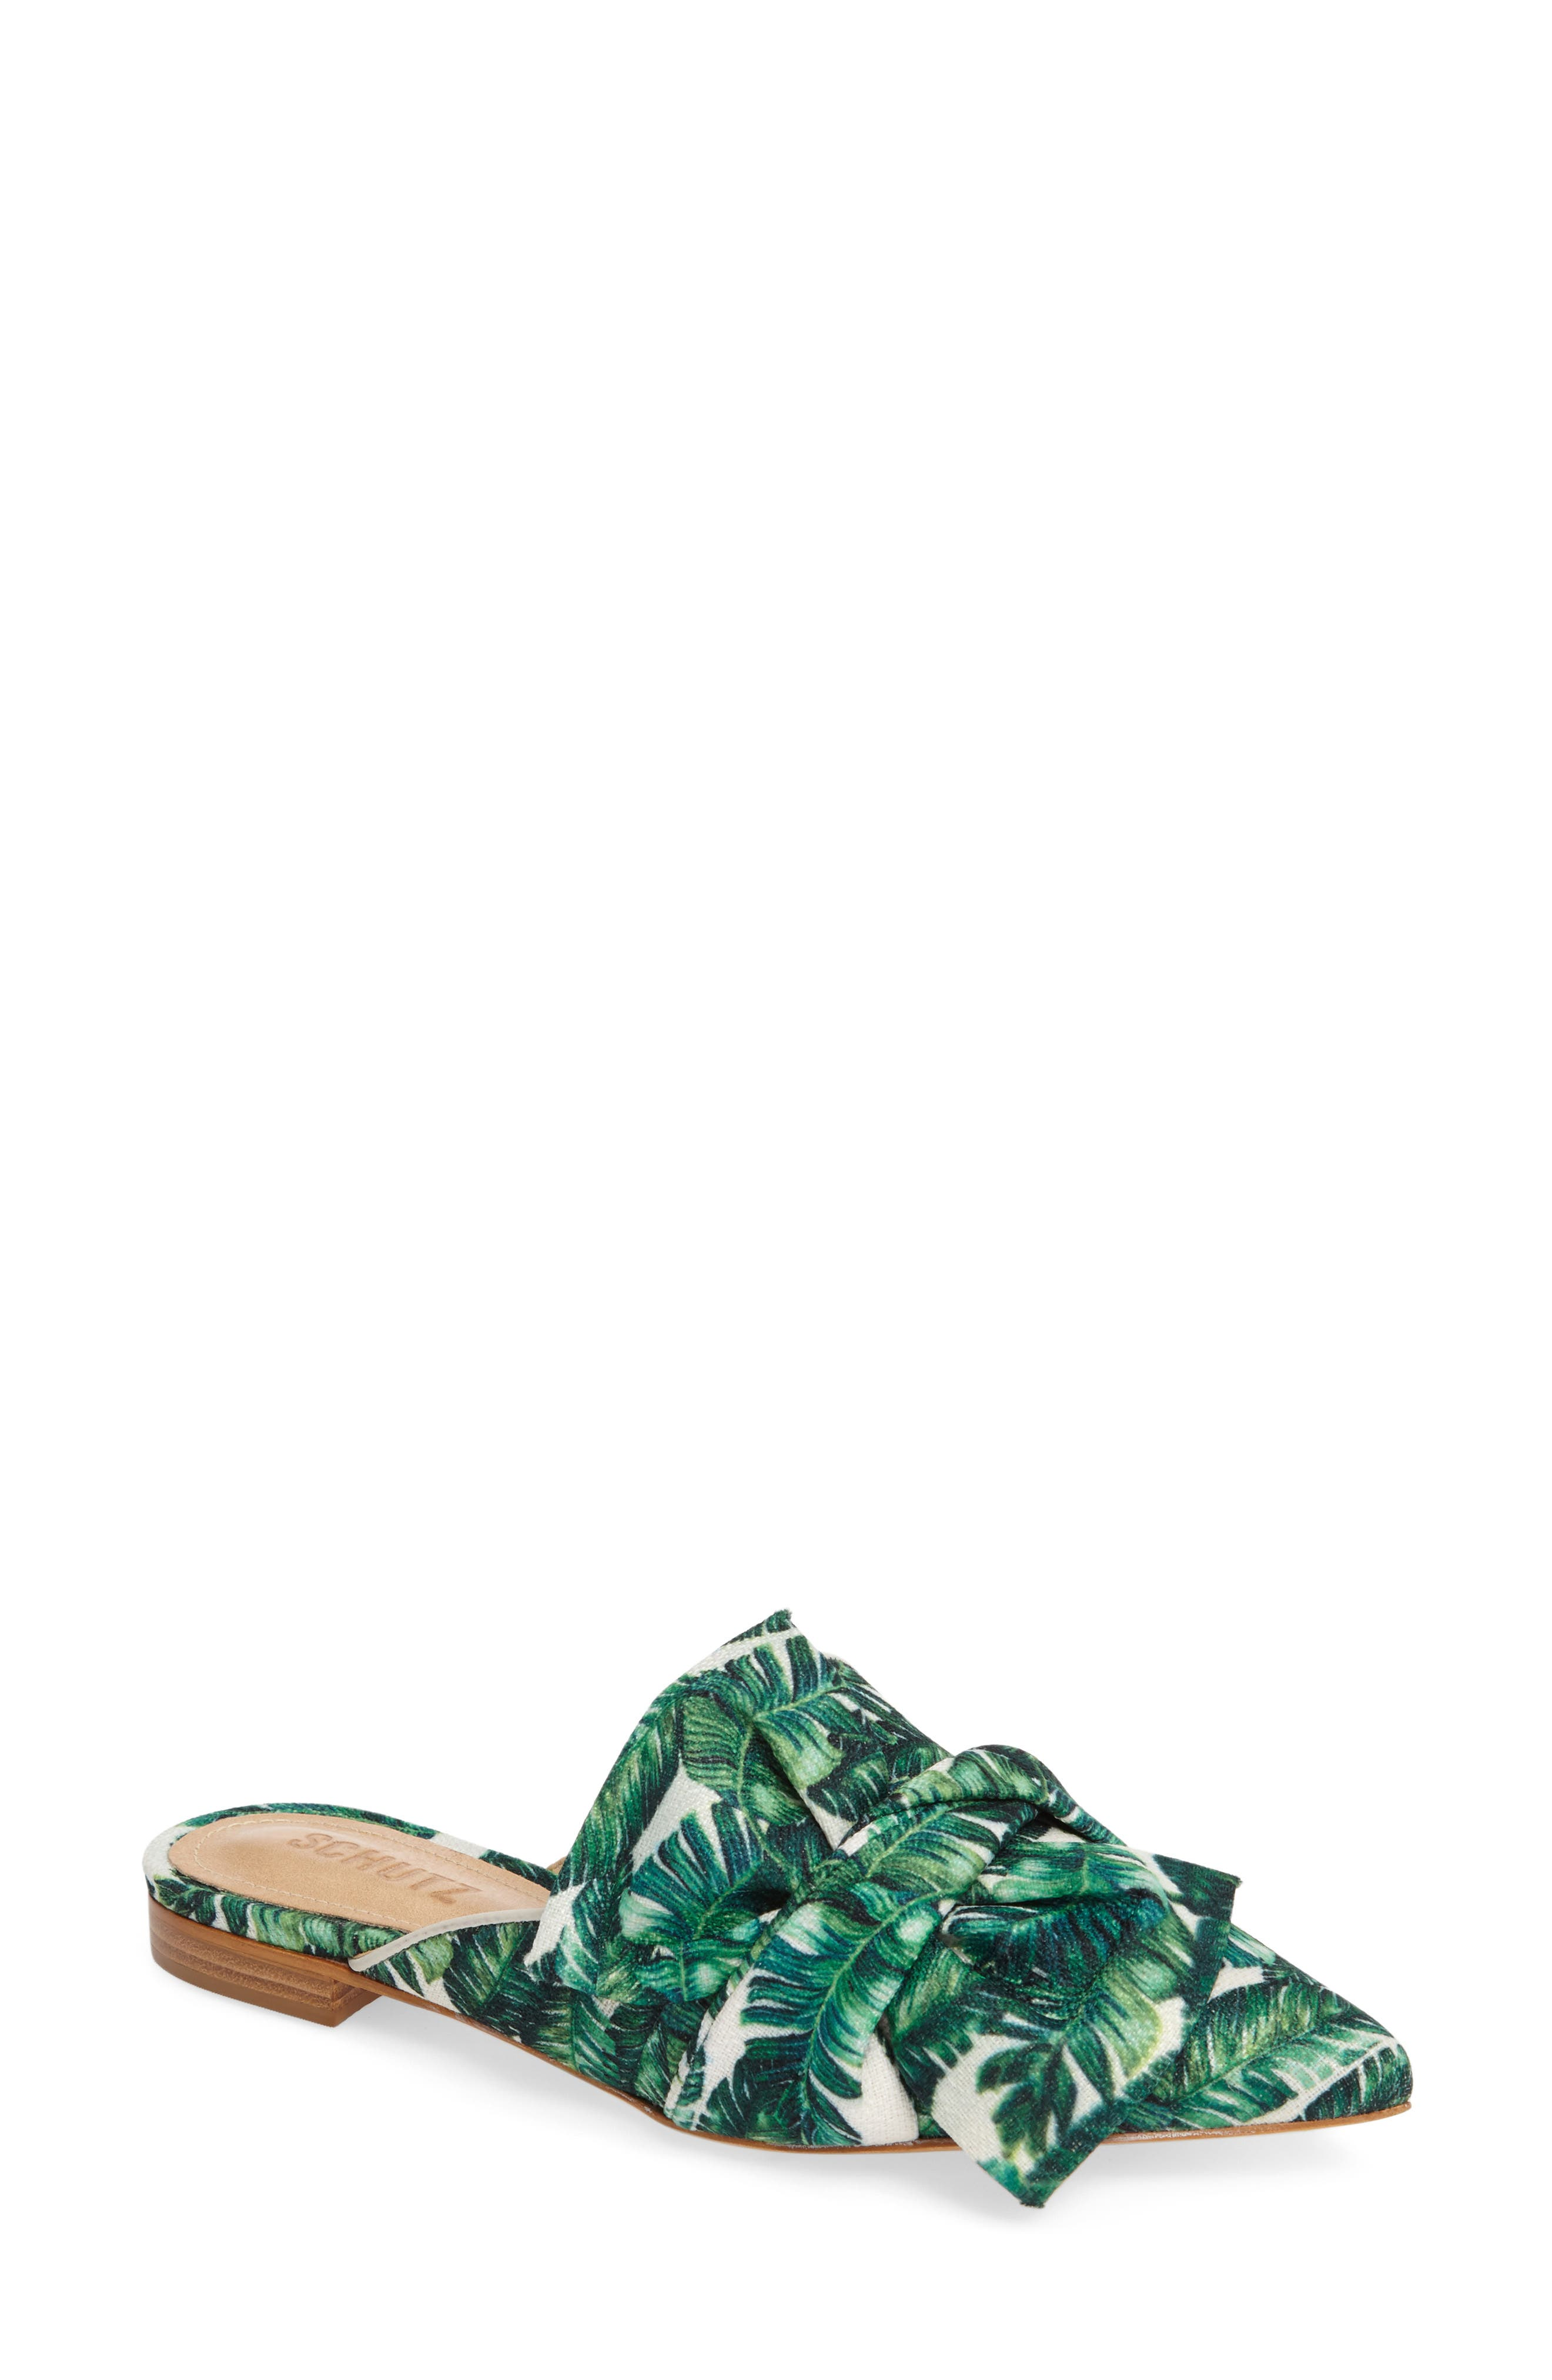 SCHUTZ D'Ana Knotted Loafer Mule, Main, color, 100